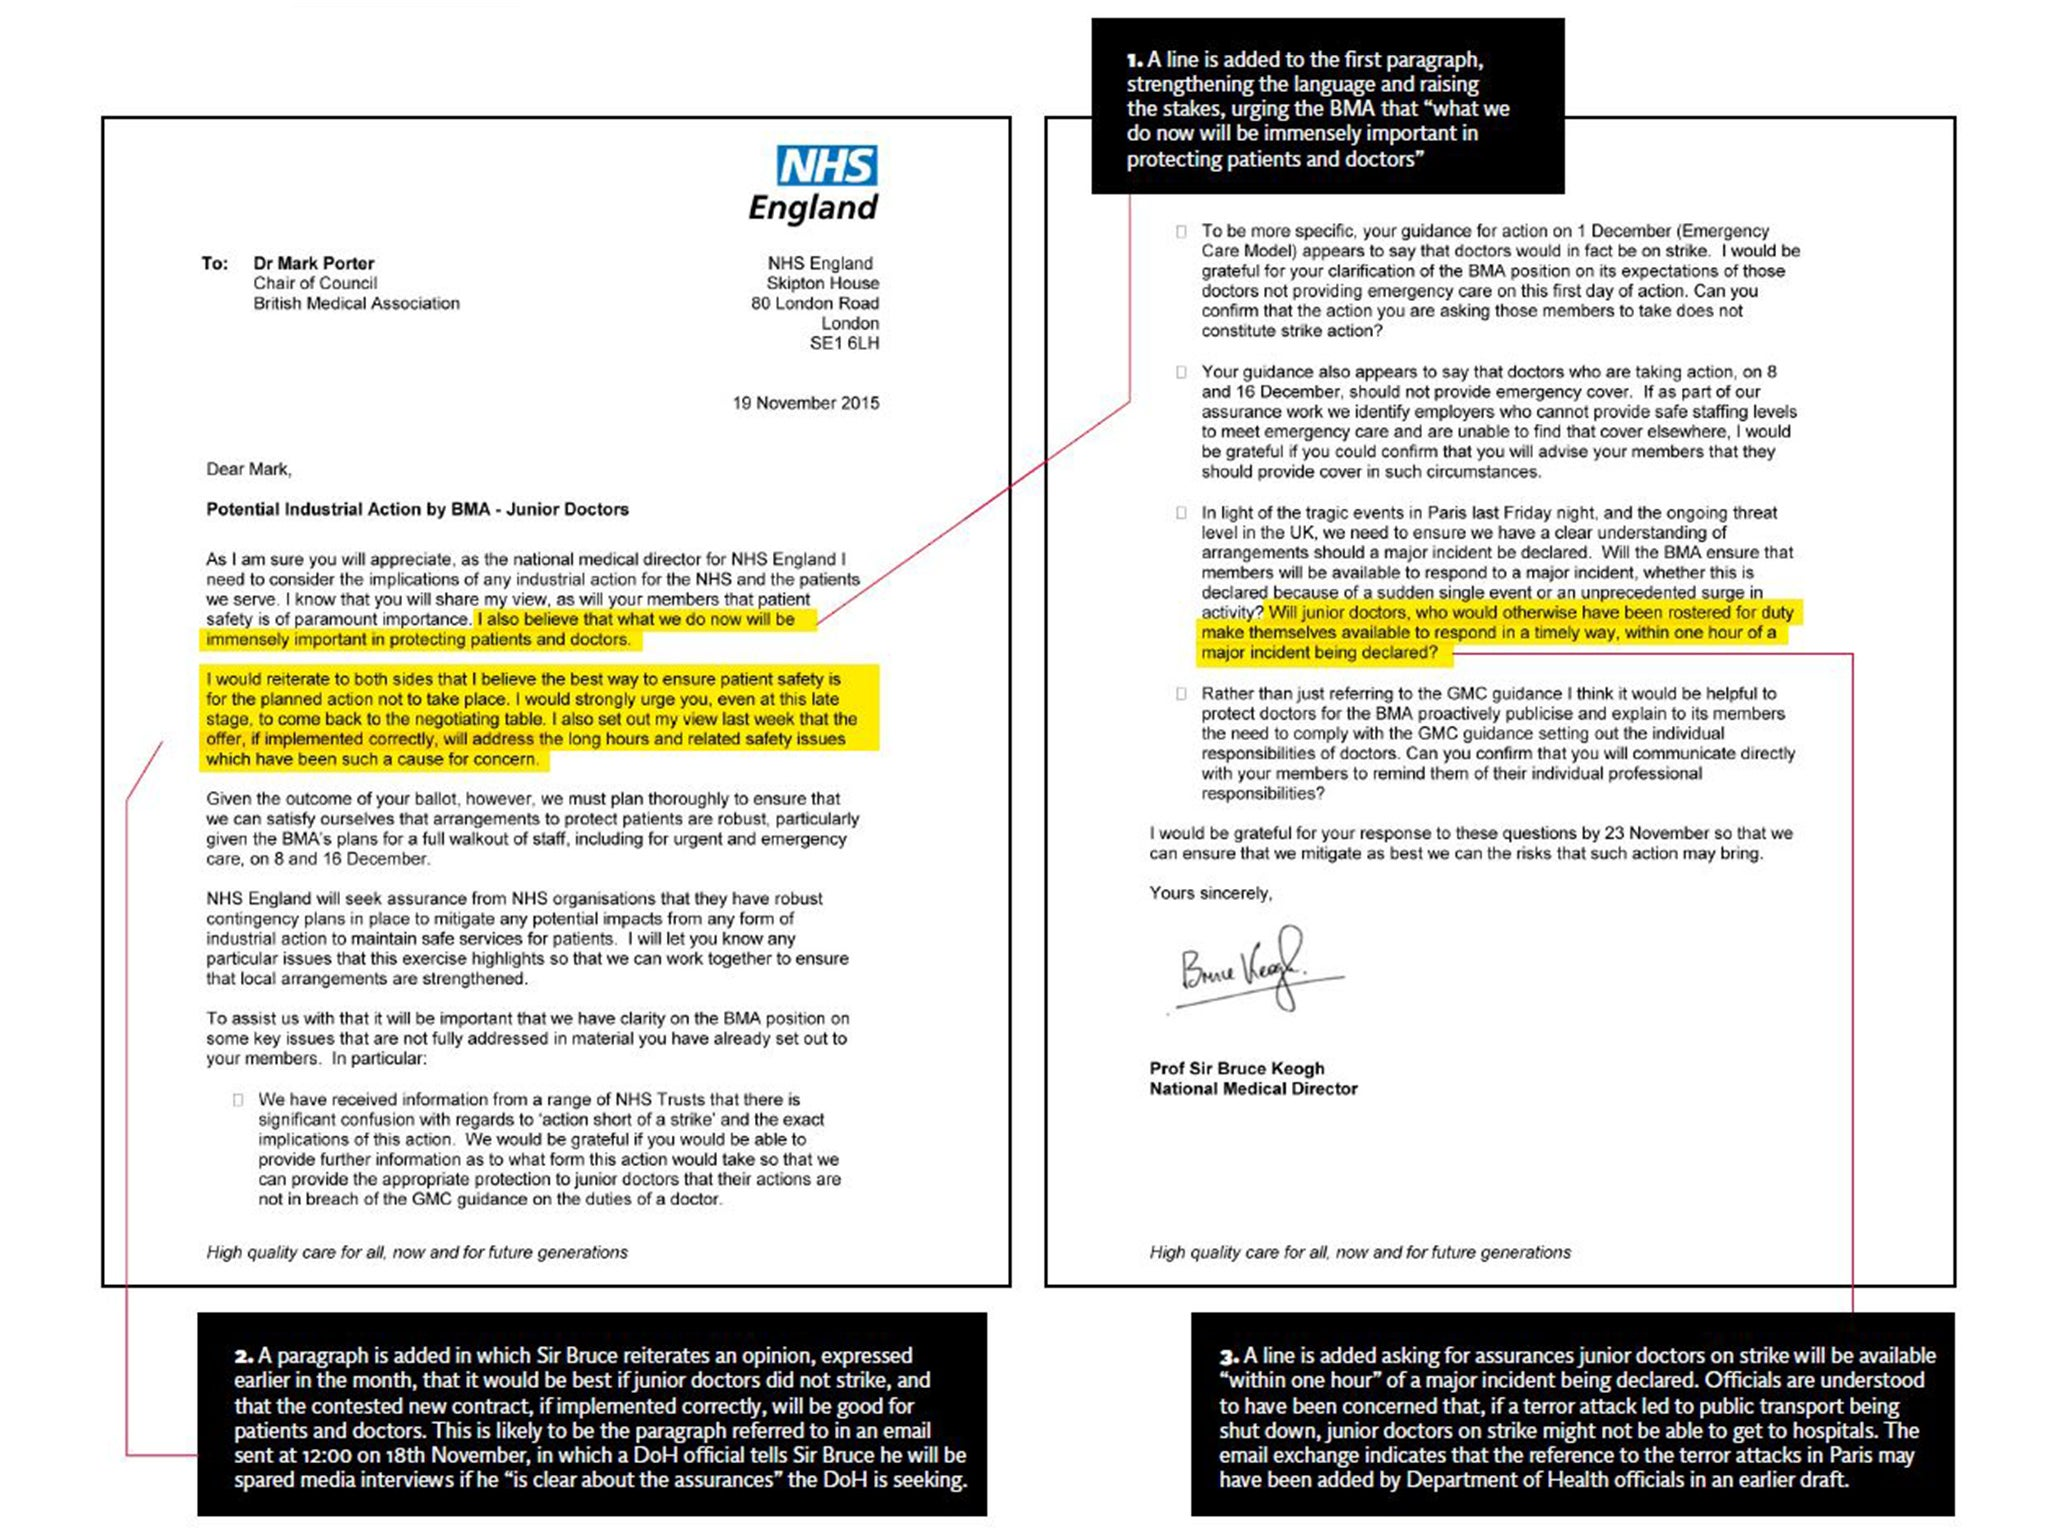 junior doctors whitehall edited letter from independent medic click here to see how the text of the letter changed